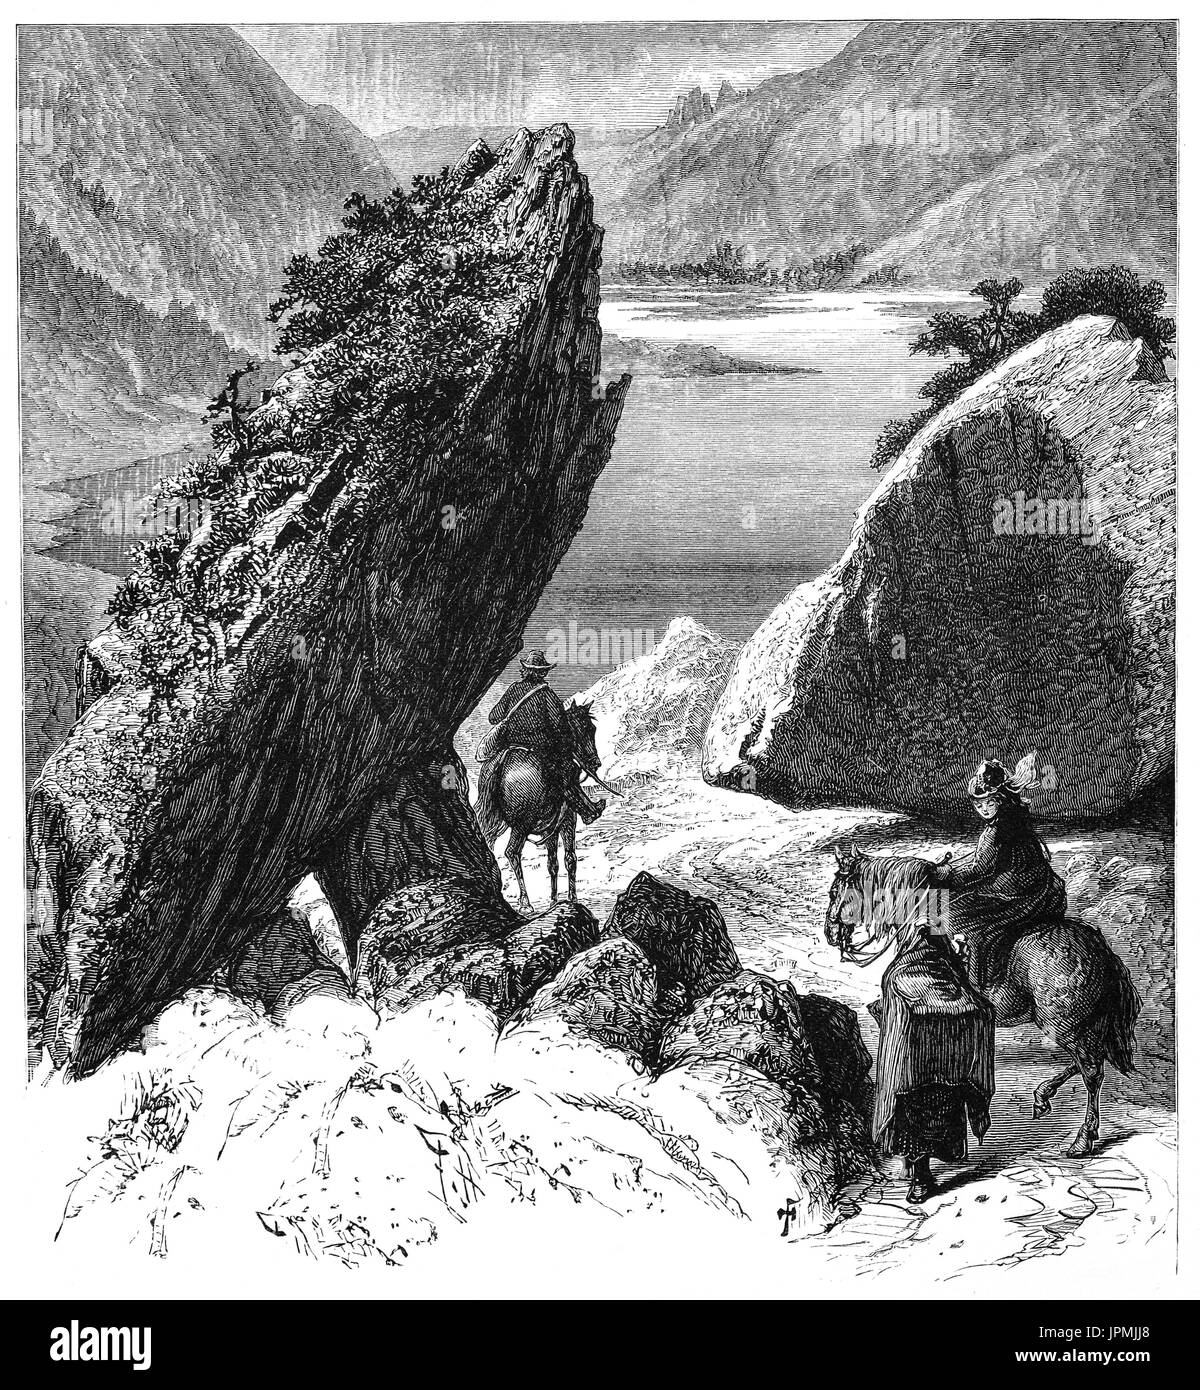 1870: The Gap of Dunloe (from Irish: Dún Lóich, meaning 'Lóich's stronghold', otherwise known as Bearna an Choimín meaning 'gap of the common-land') is a narrow mountain pass. Located between MacGillycuddy's Reeks (west) and Purple Mountain  in Killarney National Park in the Ring of Kerry, , County Kerry, Ireland. - Stock Image